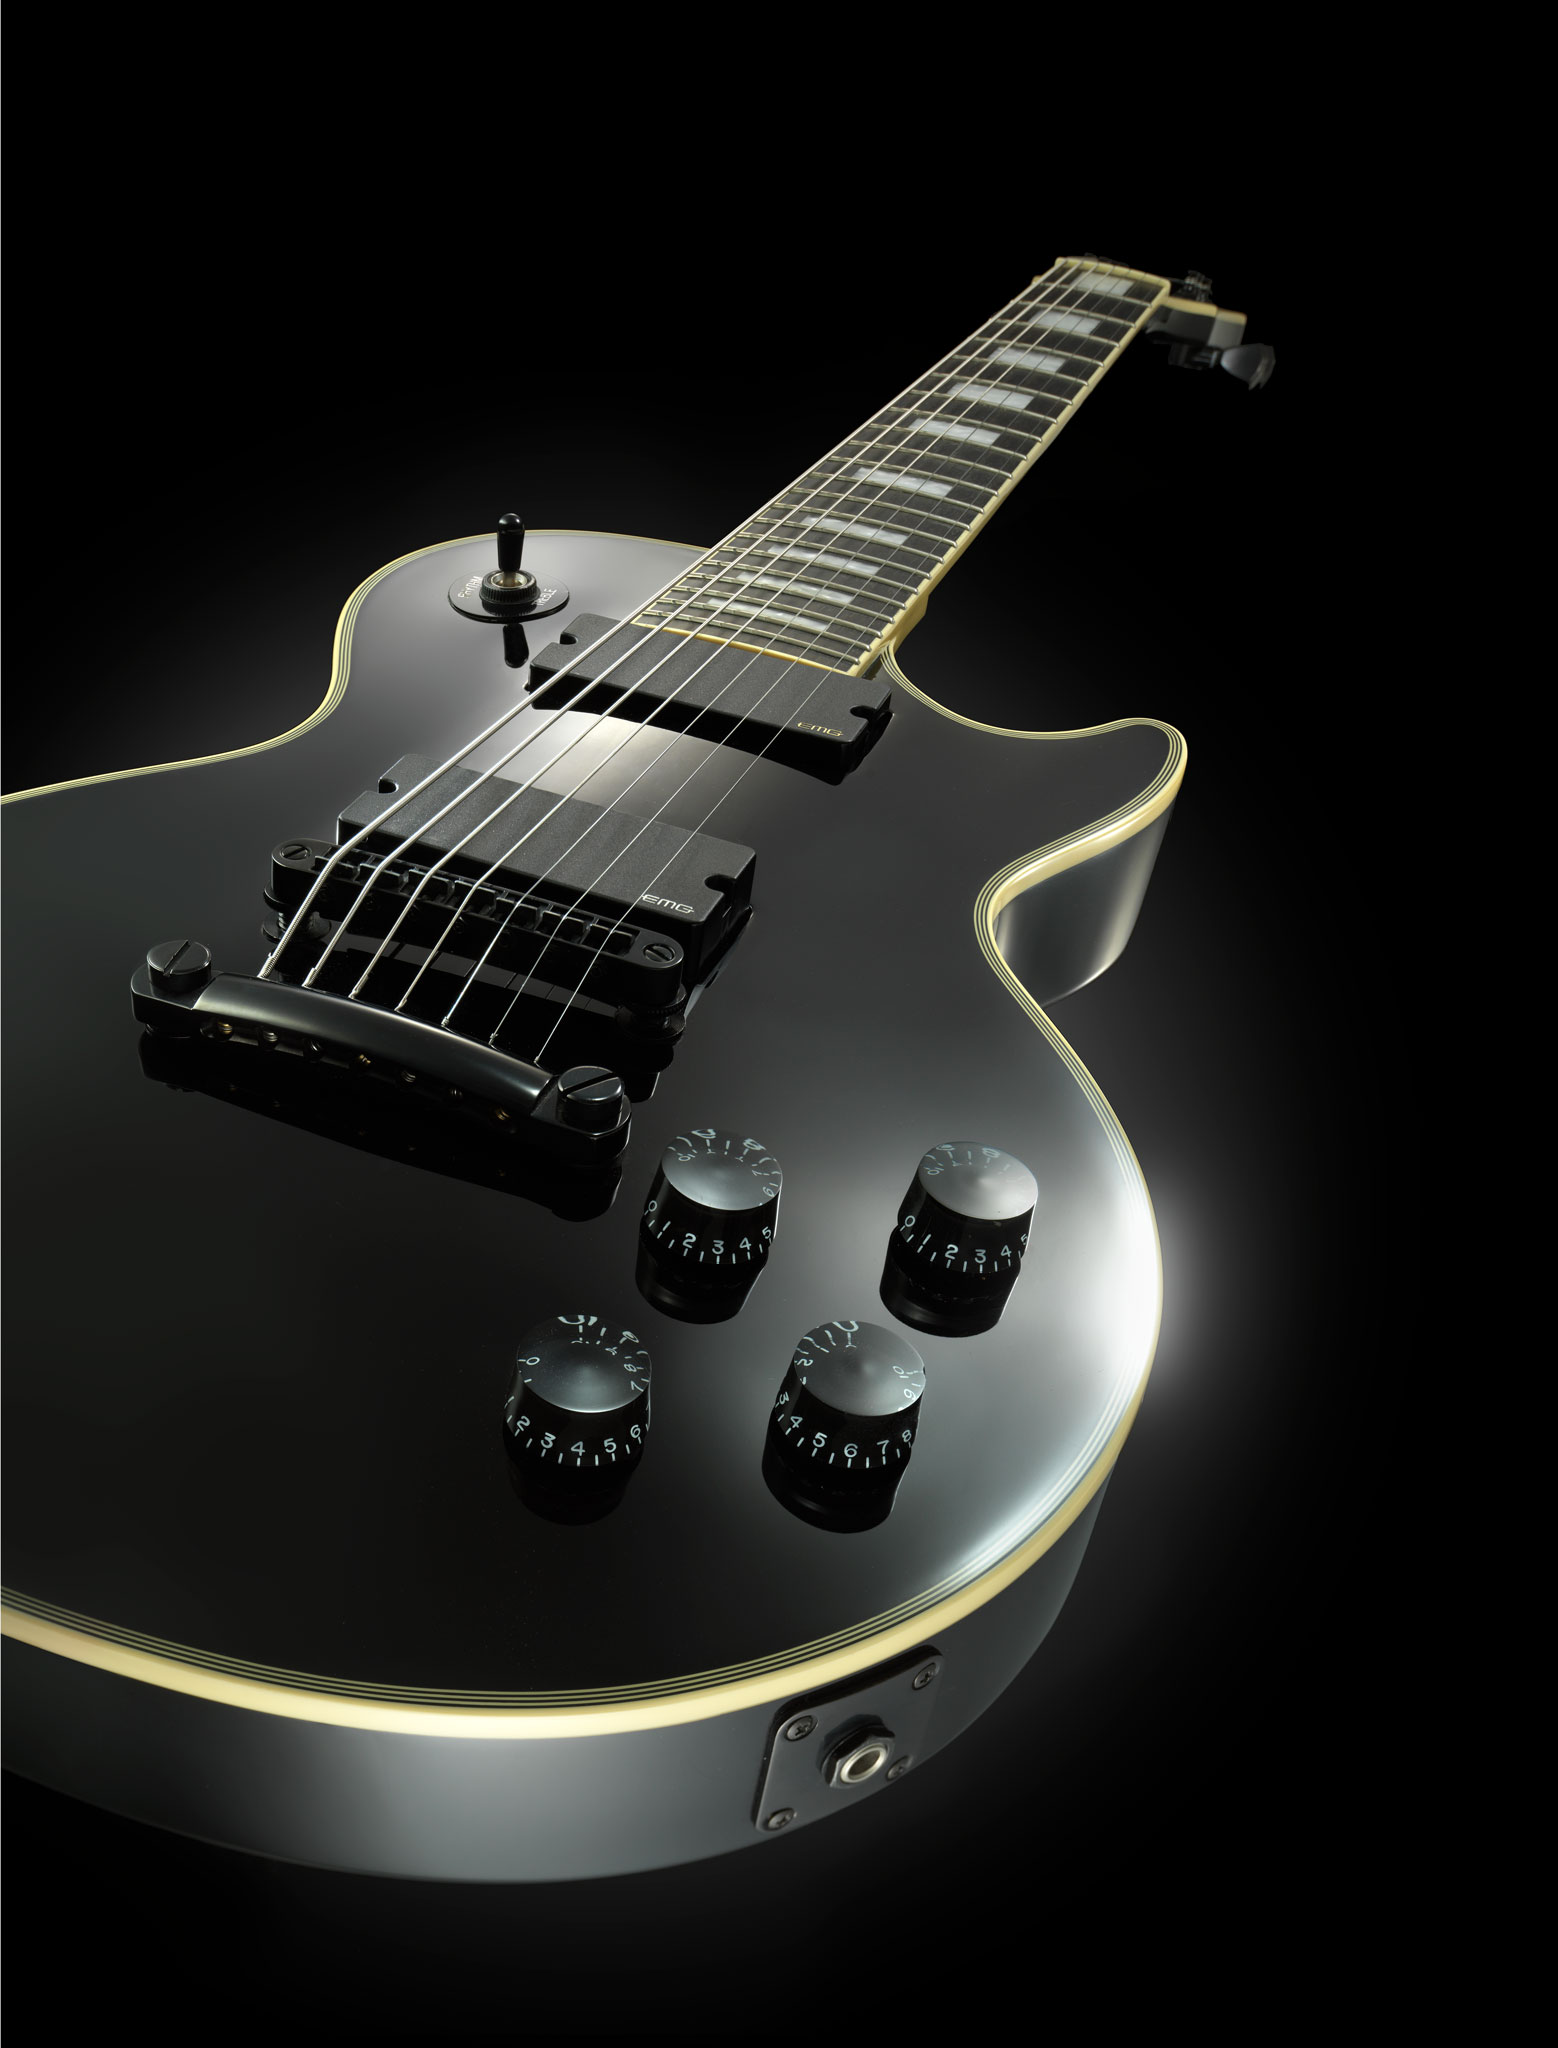 Guitar product photography